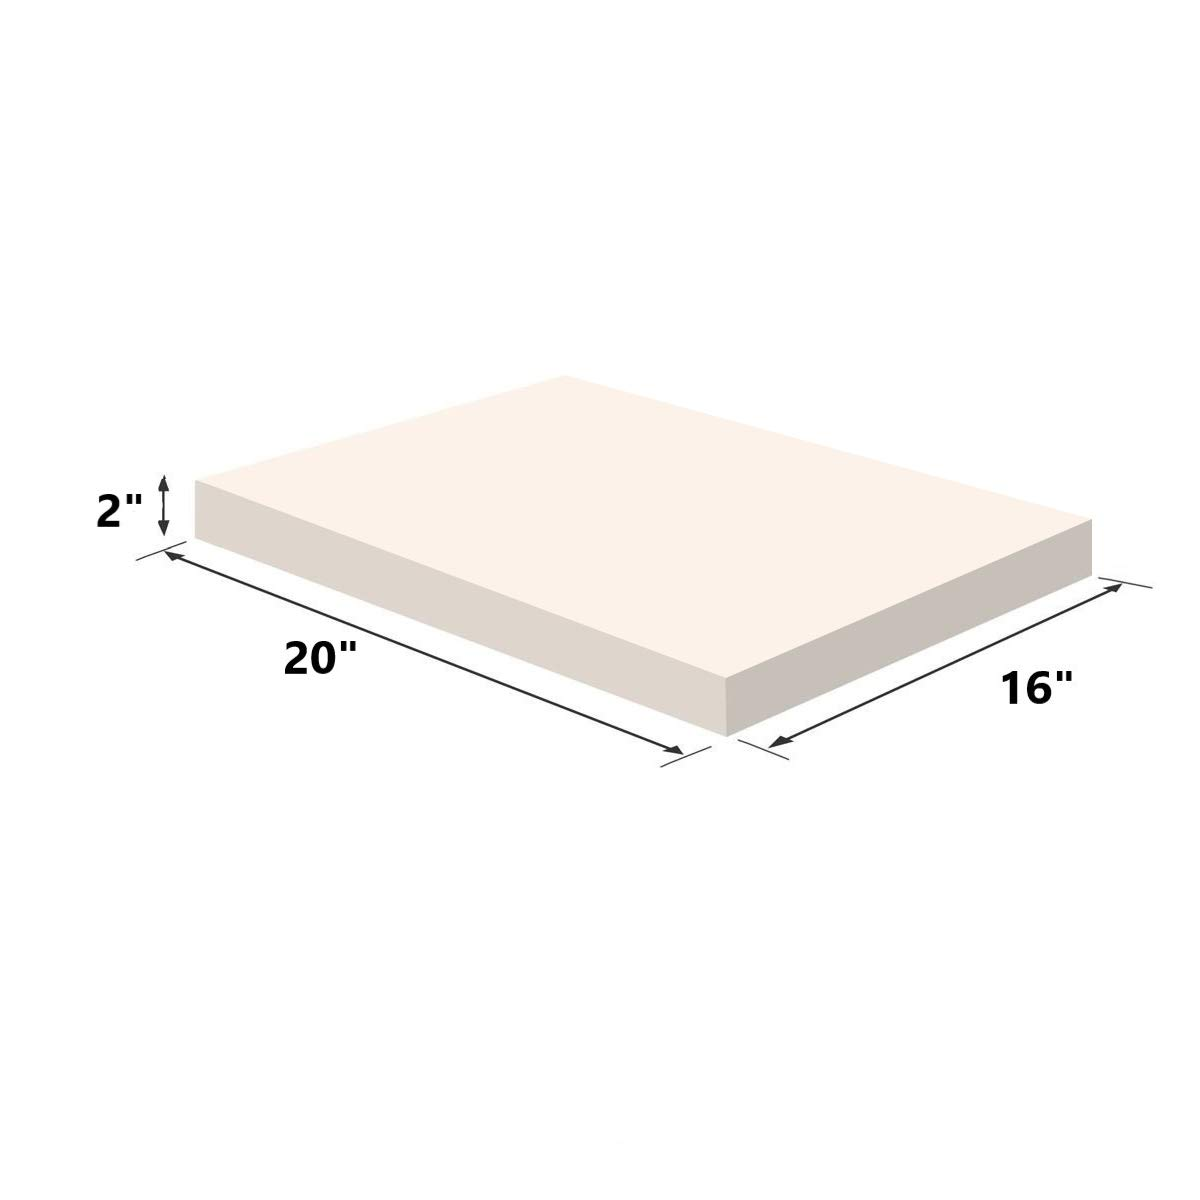 Upholstery Visco Memory Foam Sheet- 3.5 lb High Density 2''x20''x16''- Luxury Quality for Sofa, Chair Cushions, Pillows, Squishy Toy, Doctor Recommended for Backache & Bed Sores by Dream Solutions USA by Dream Solutions USA